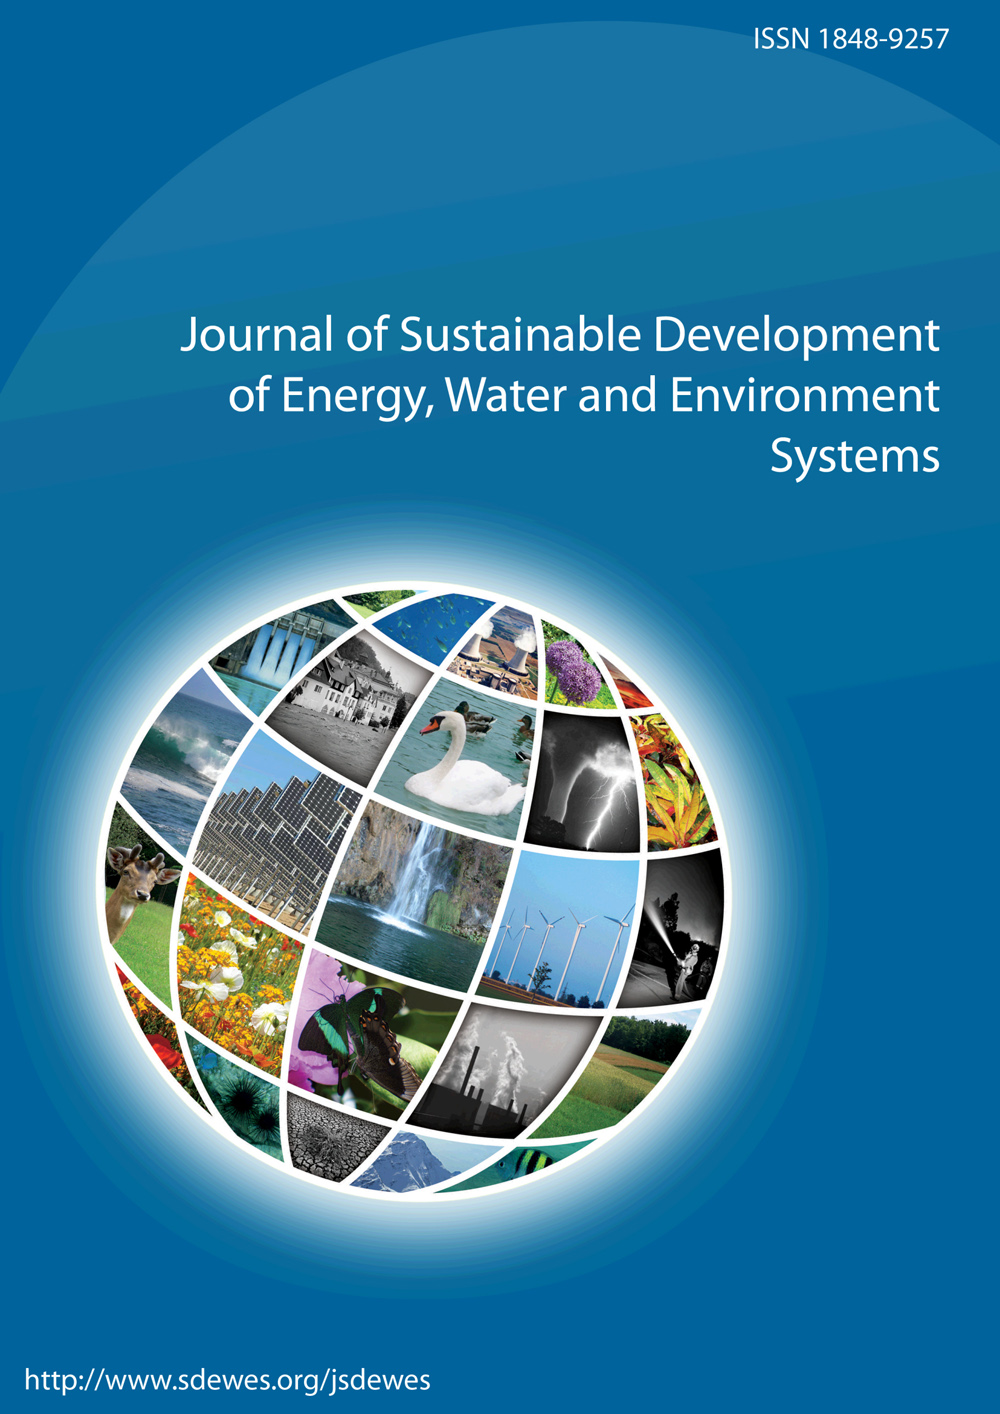 Journal of Sustainable Development of Energy, Water and Environment Systems